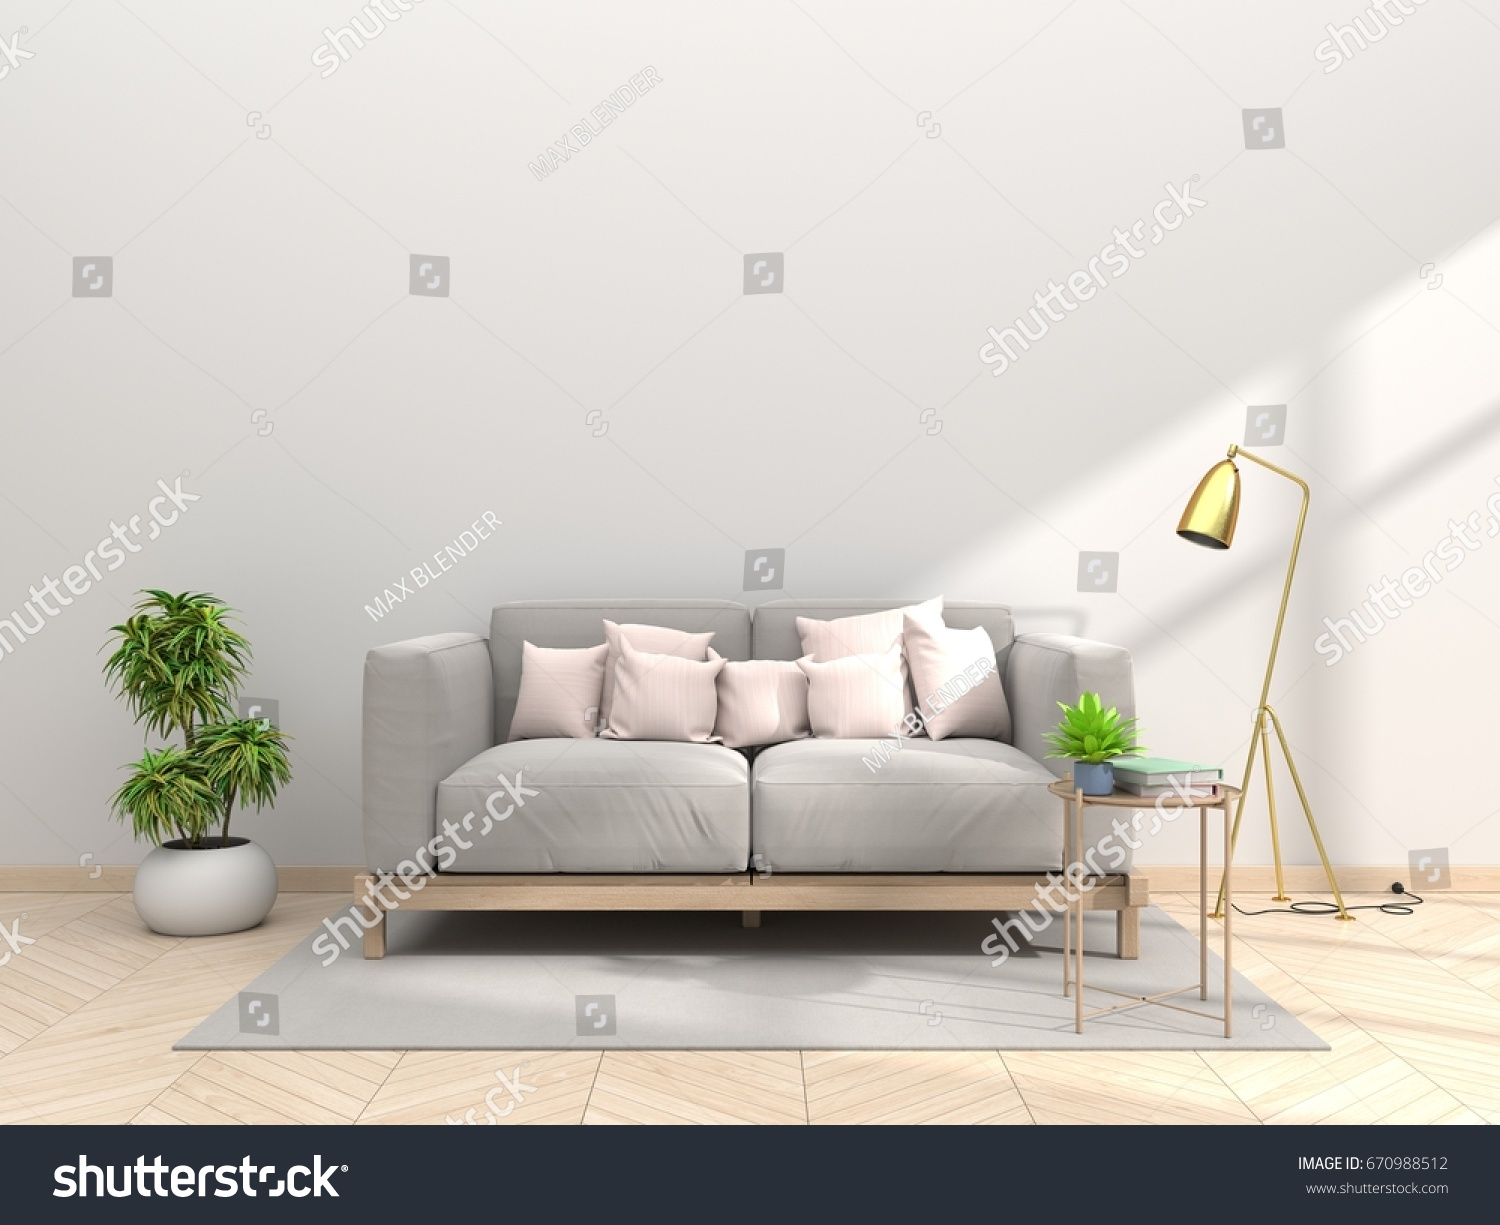 Design Living Room Sofa Pillow Pink Stock Illustration 670988512 ...